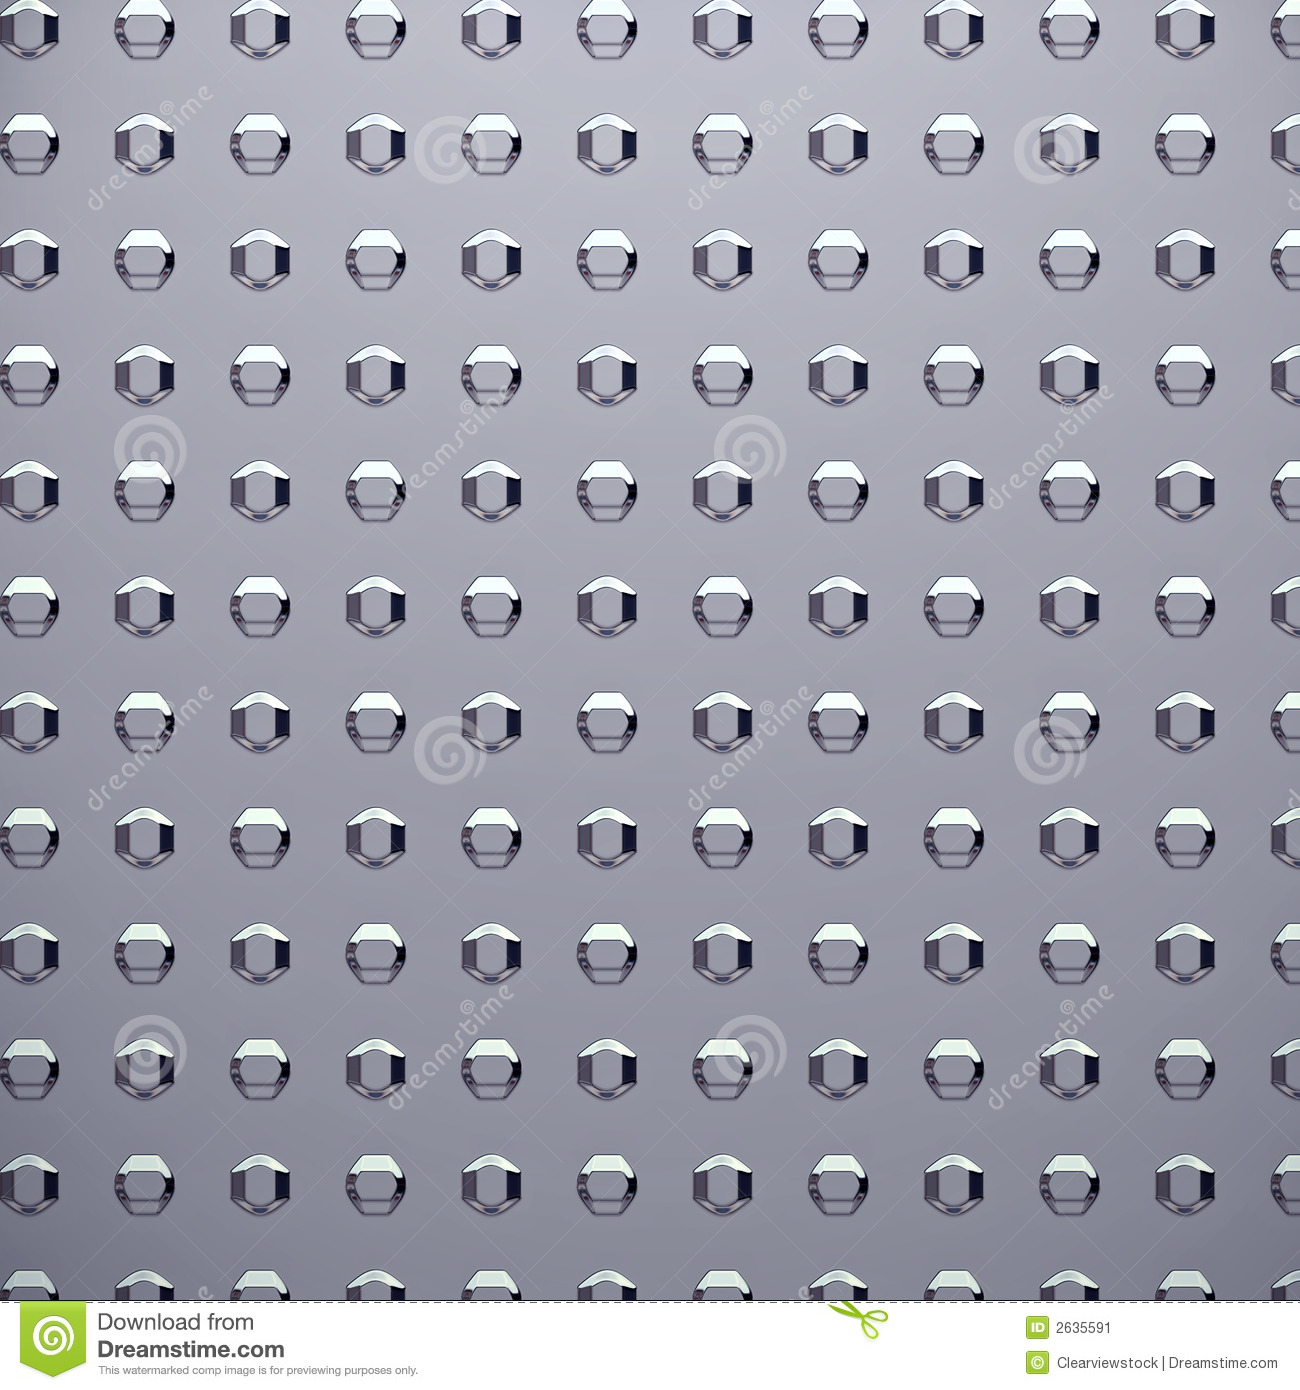 rivets in metal. royalty-free stock photo. download sheet of steel with rivets in metal o